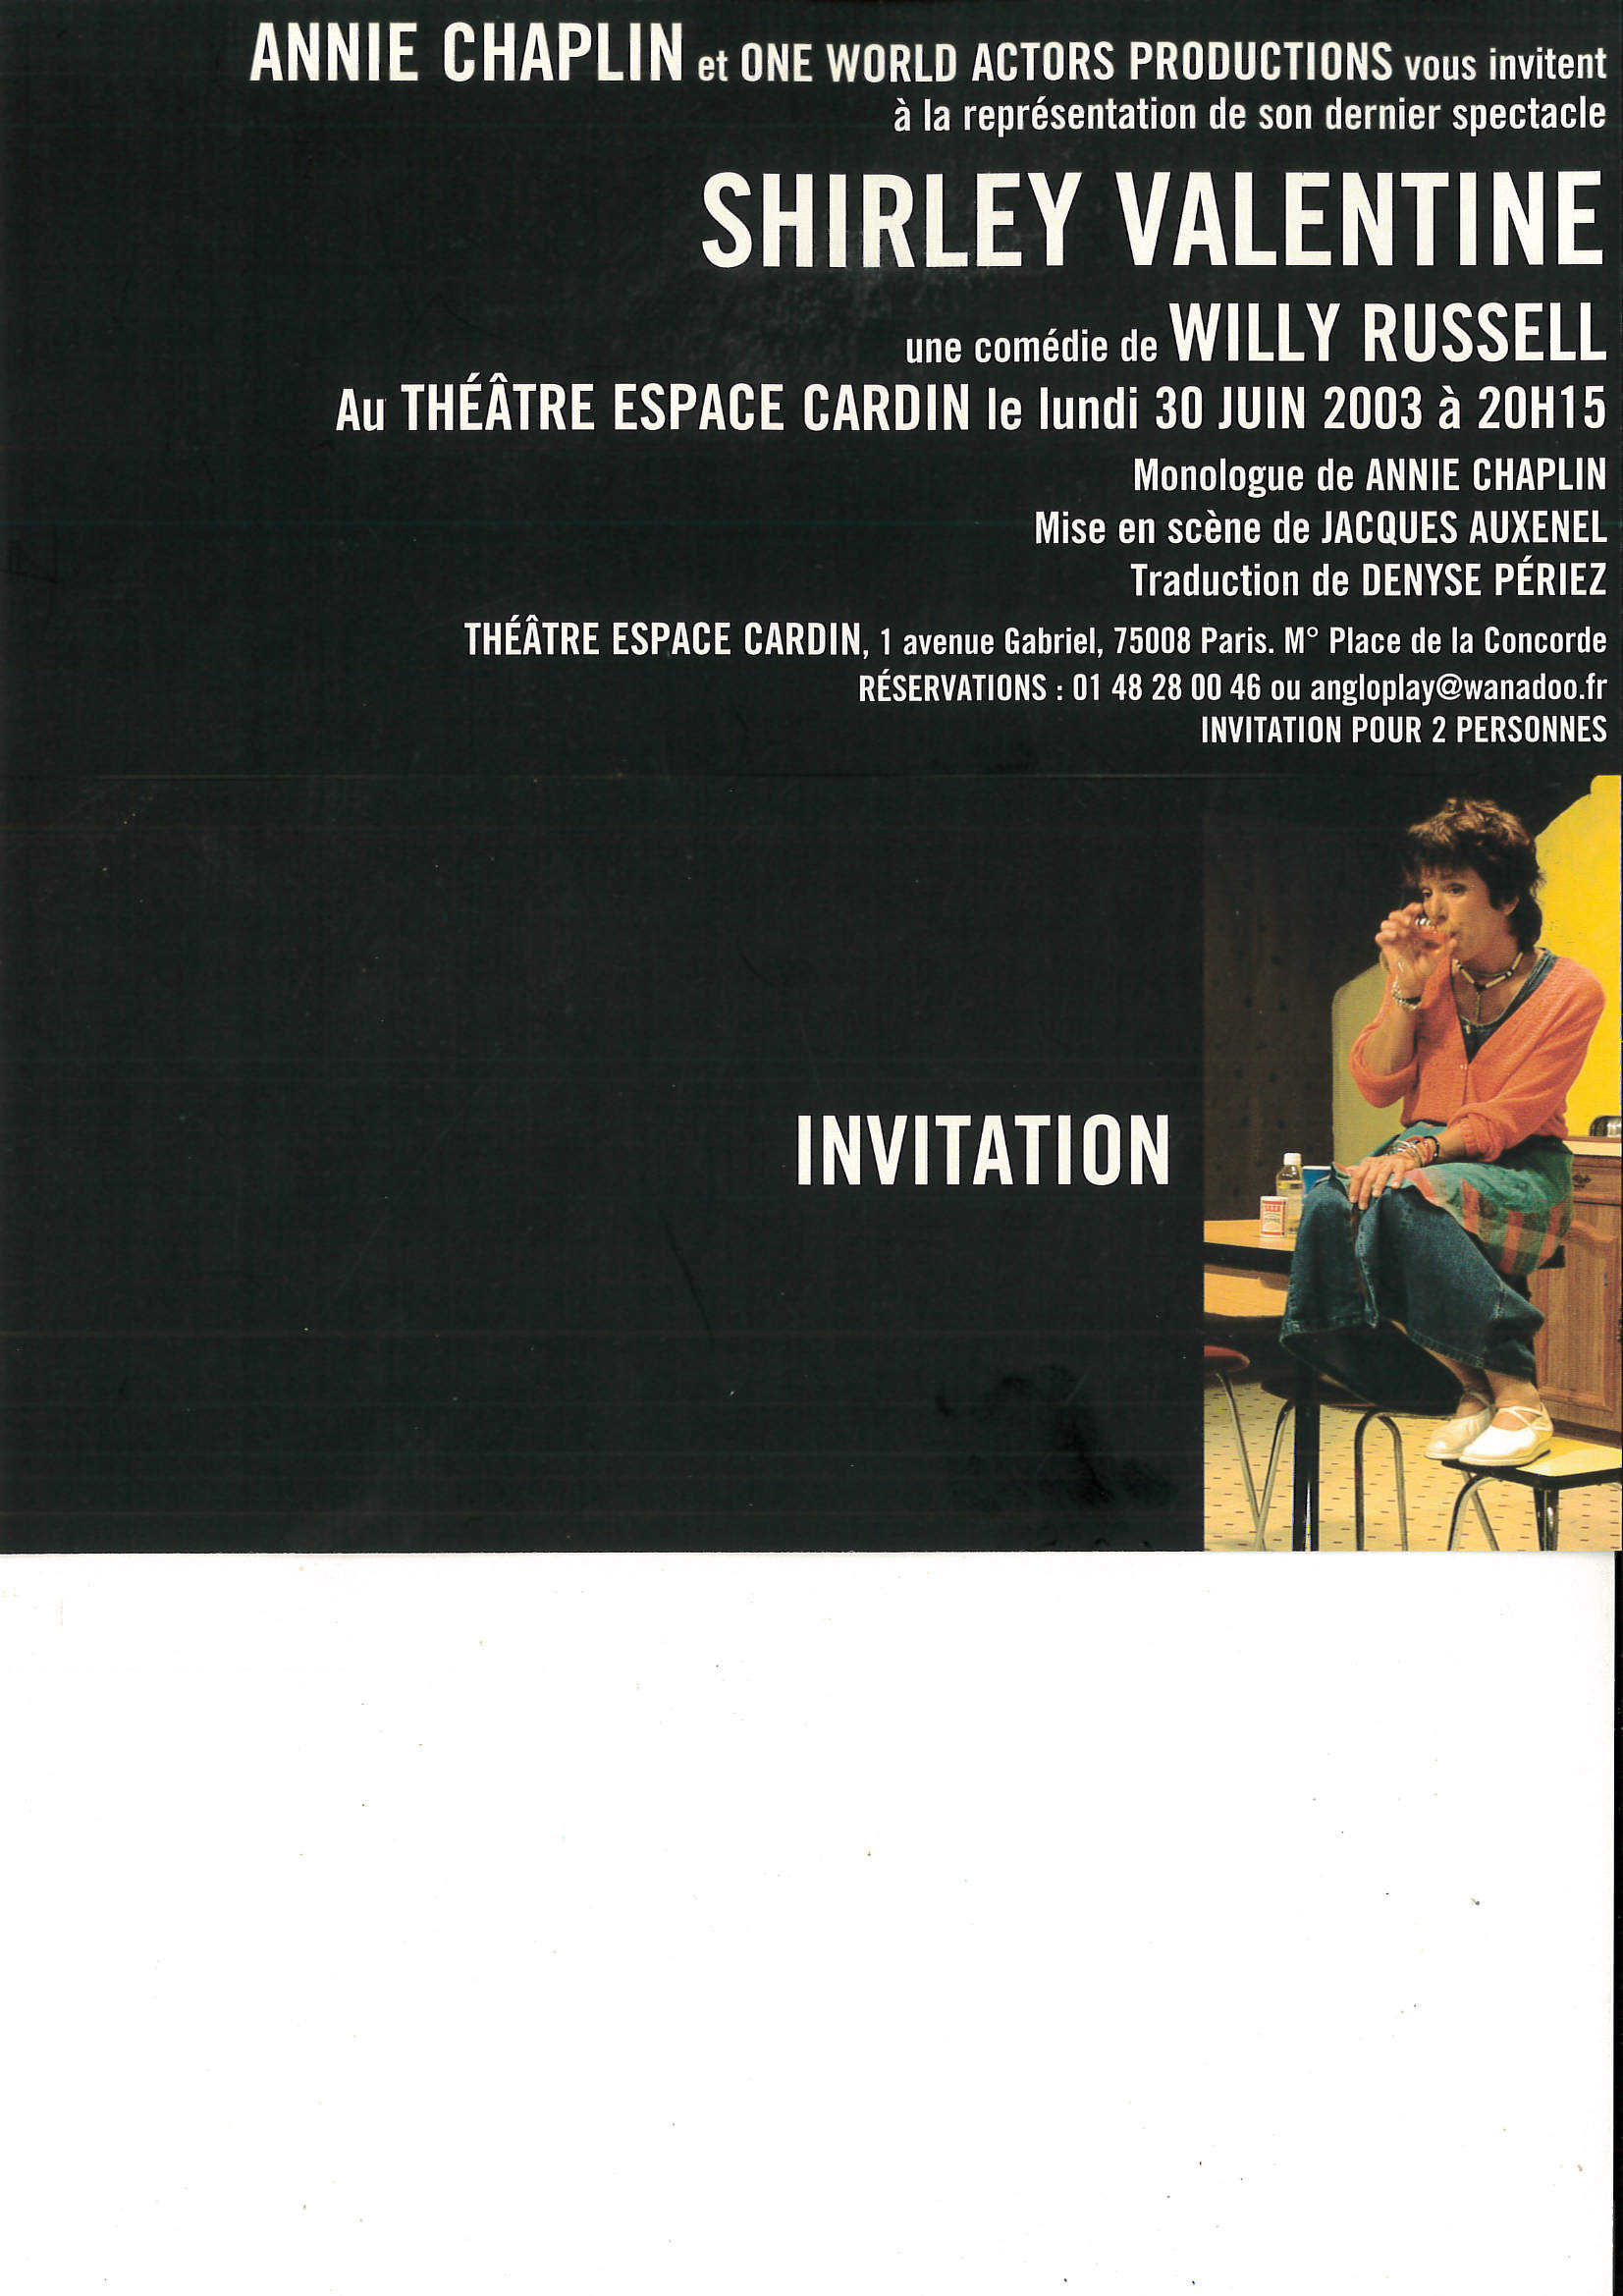 OWAP presenting Charlie Chaplin's daughter in SHIRLEY VALENTINE at Espace Cardin Paris France.jpg